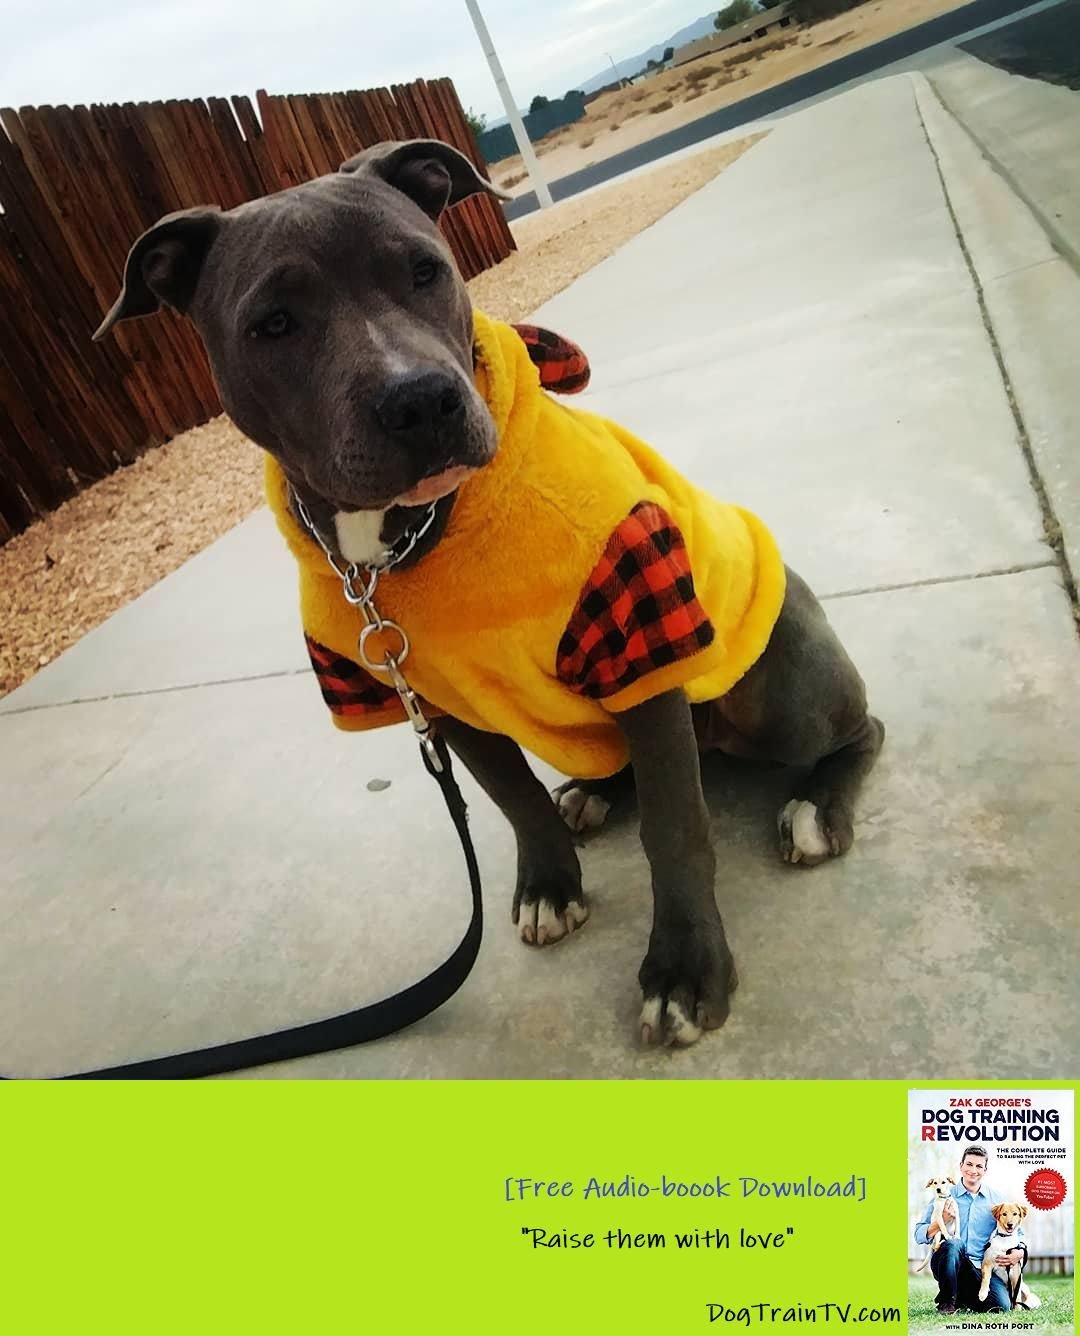 Newest 5 Member Duchess Apbt Bootcamp Walk Duck Pictureoftheday Cute Puppy Jump Start Program We Look Forward To Sharing Dog Training Puppy Jumps Dogs